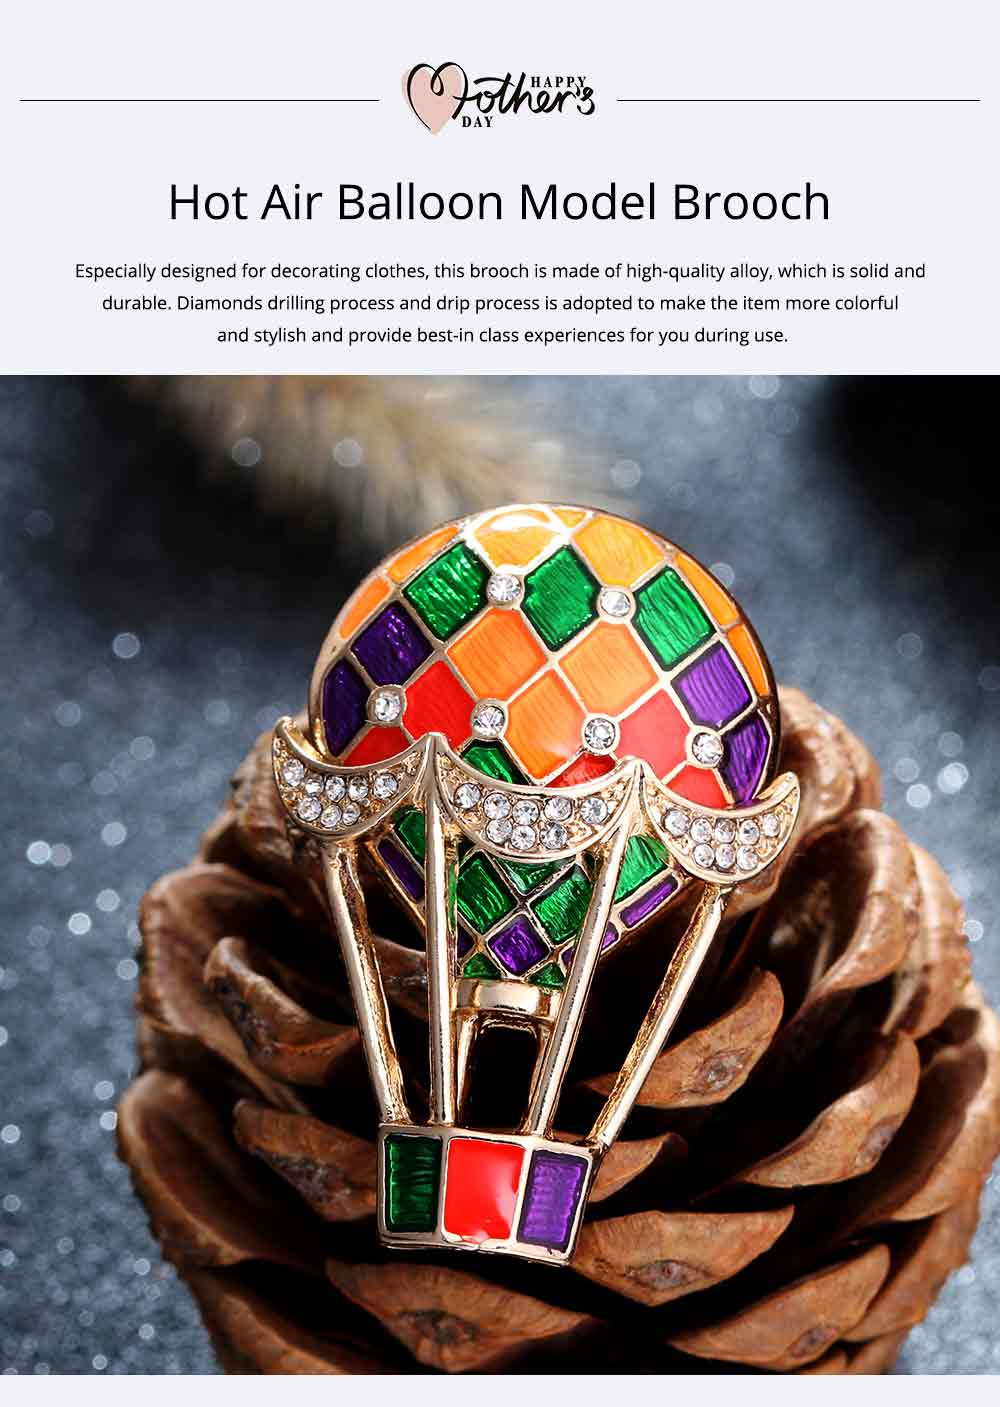 Colorful Enamel Painted Hot Air Balloon Model Brooch for Ladies, Stylish Diamonds Drilling Dripping Breastpin 0